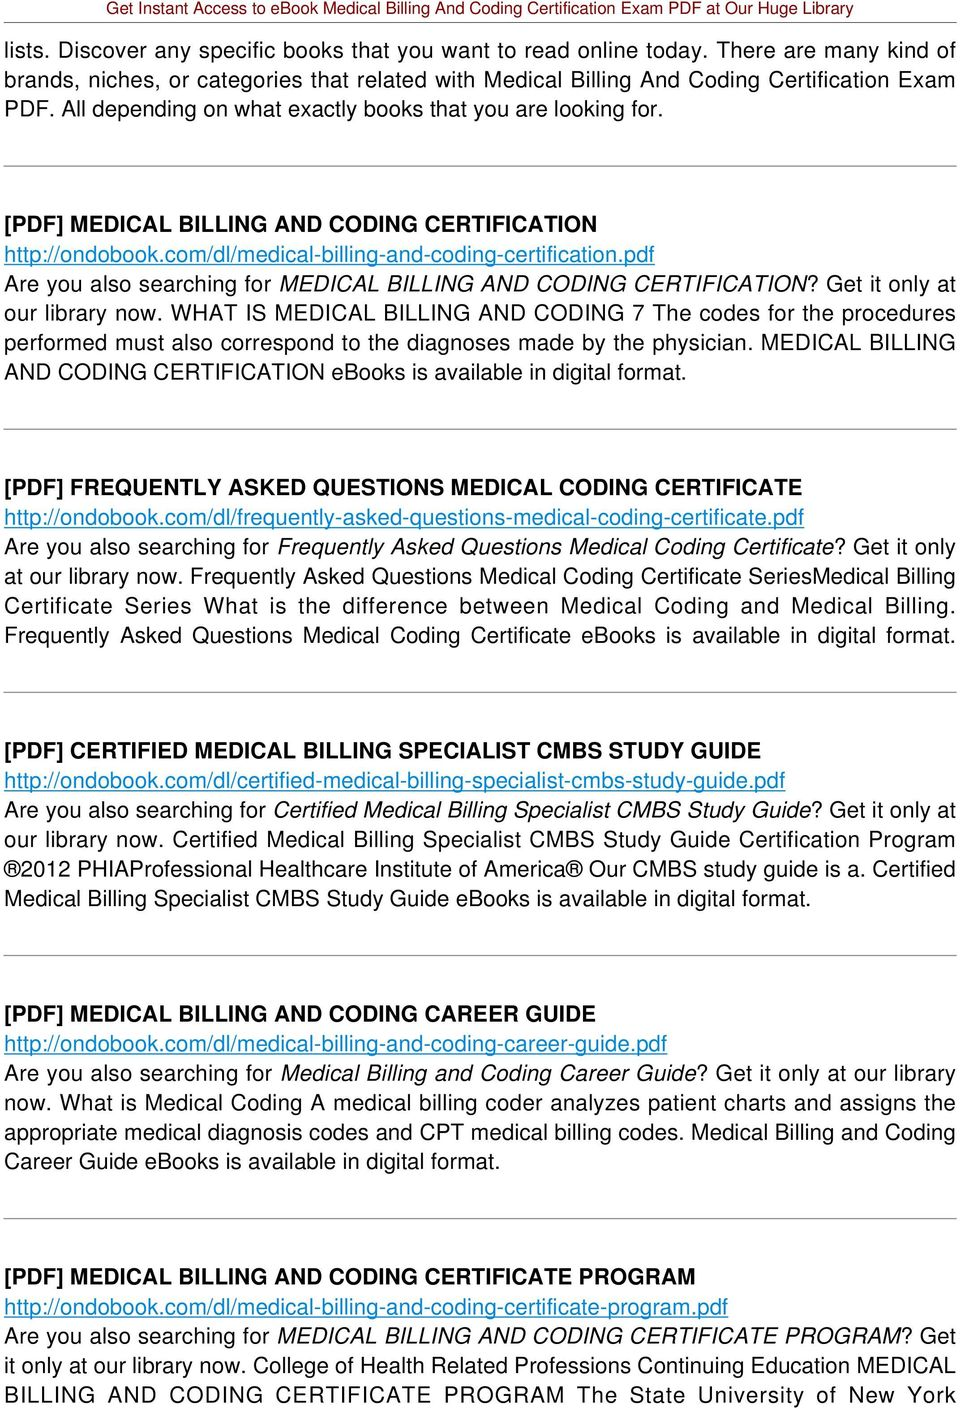 Medical Billing And Coding Certification Study Guide